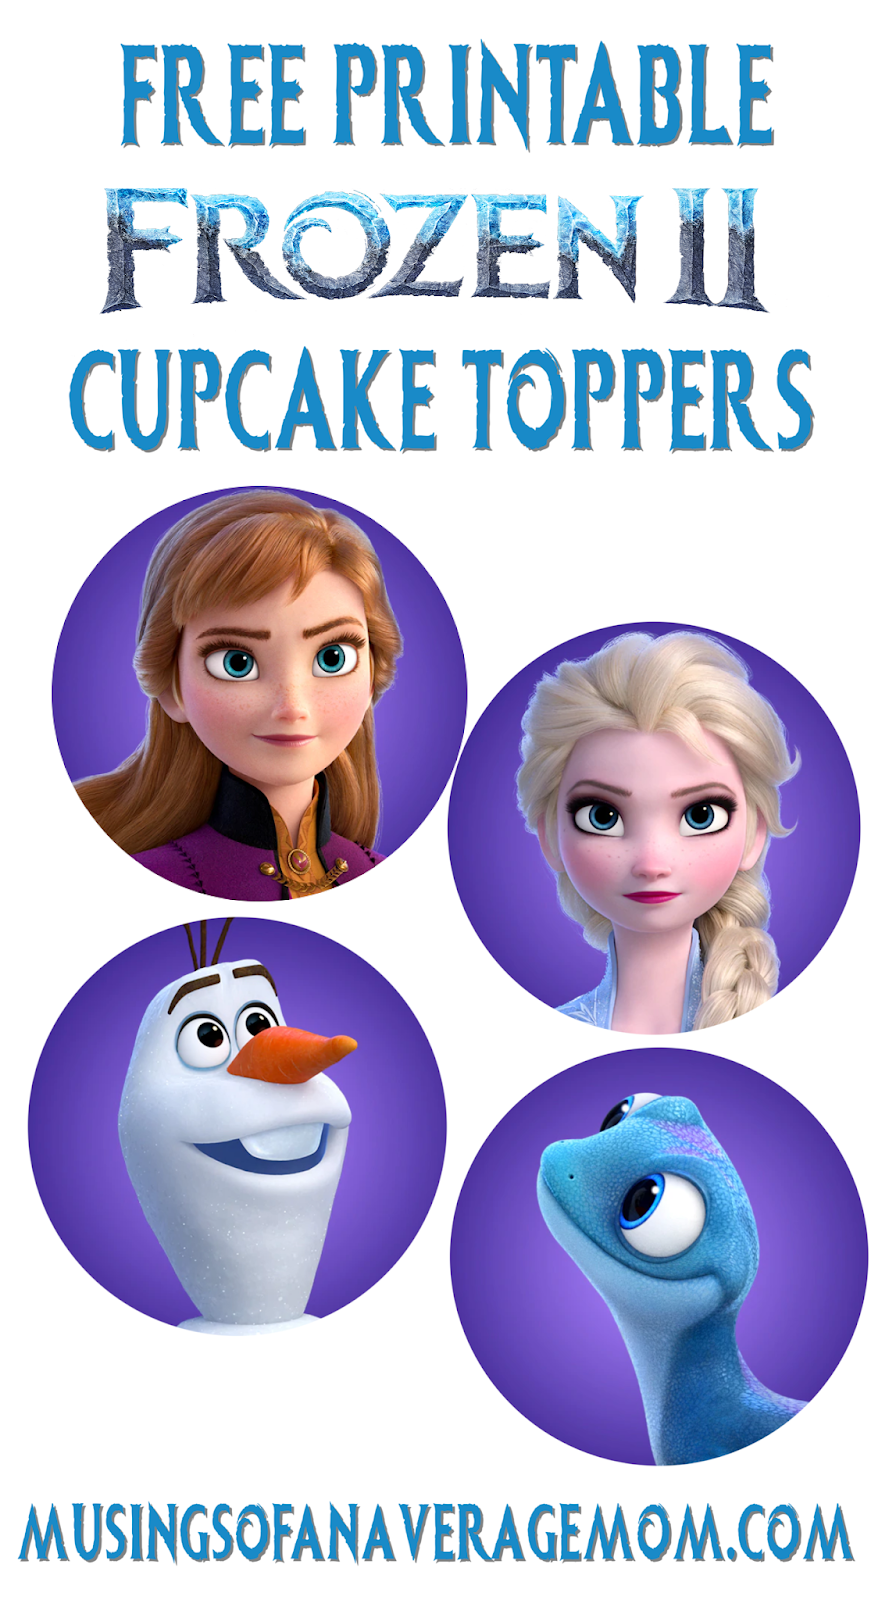 - Musings Of An Average Mom: Free Printable Frozen 2 Cupcake Toppers